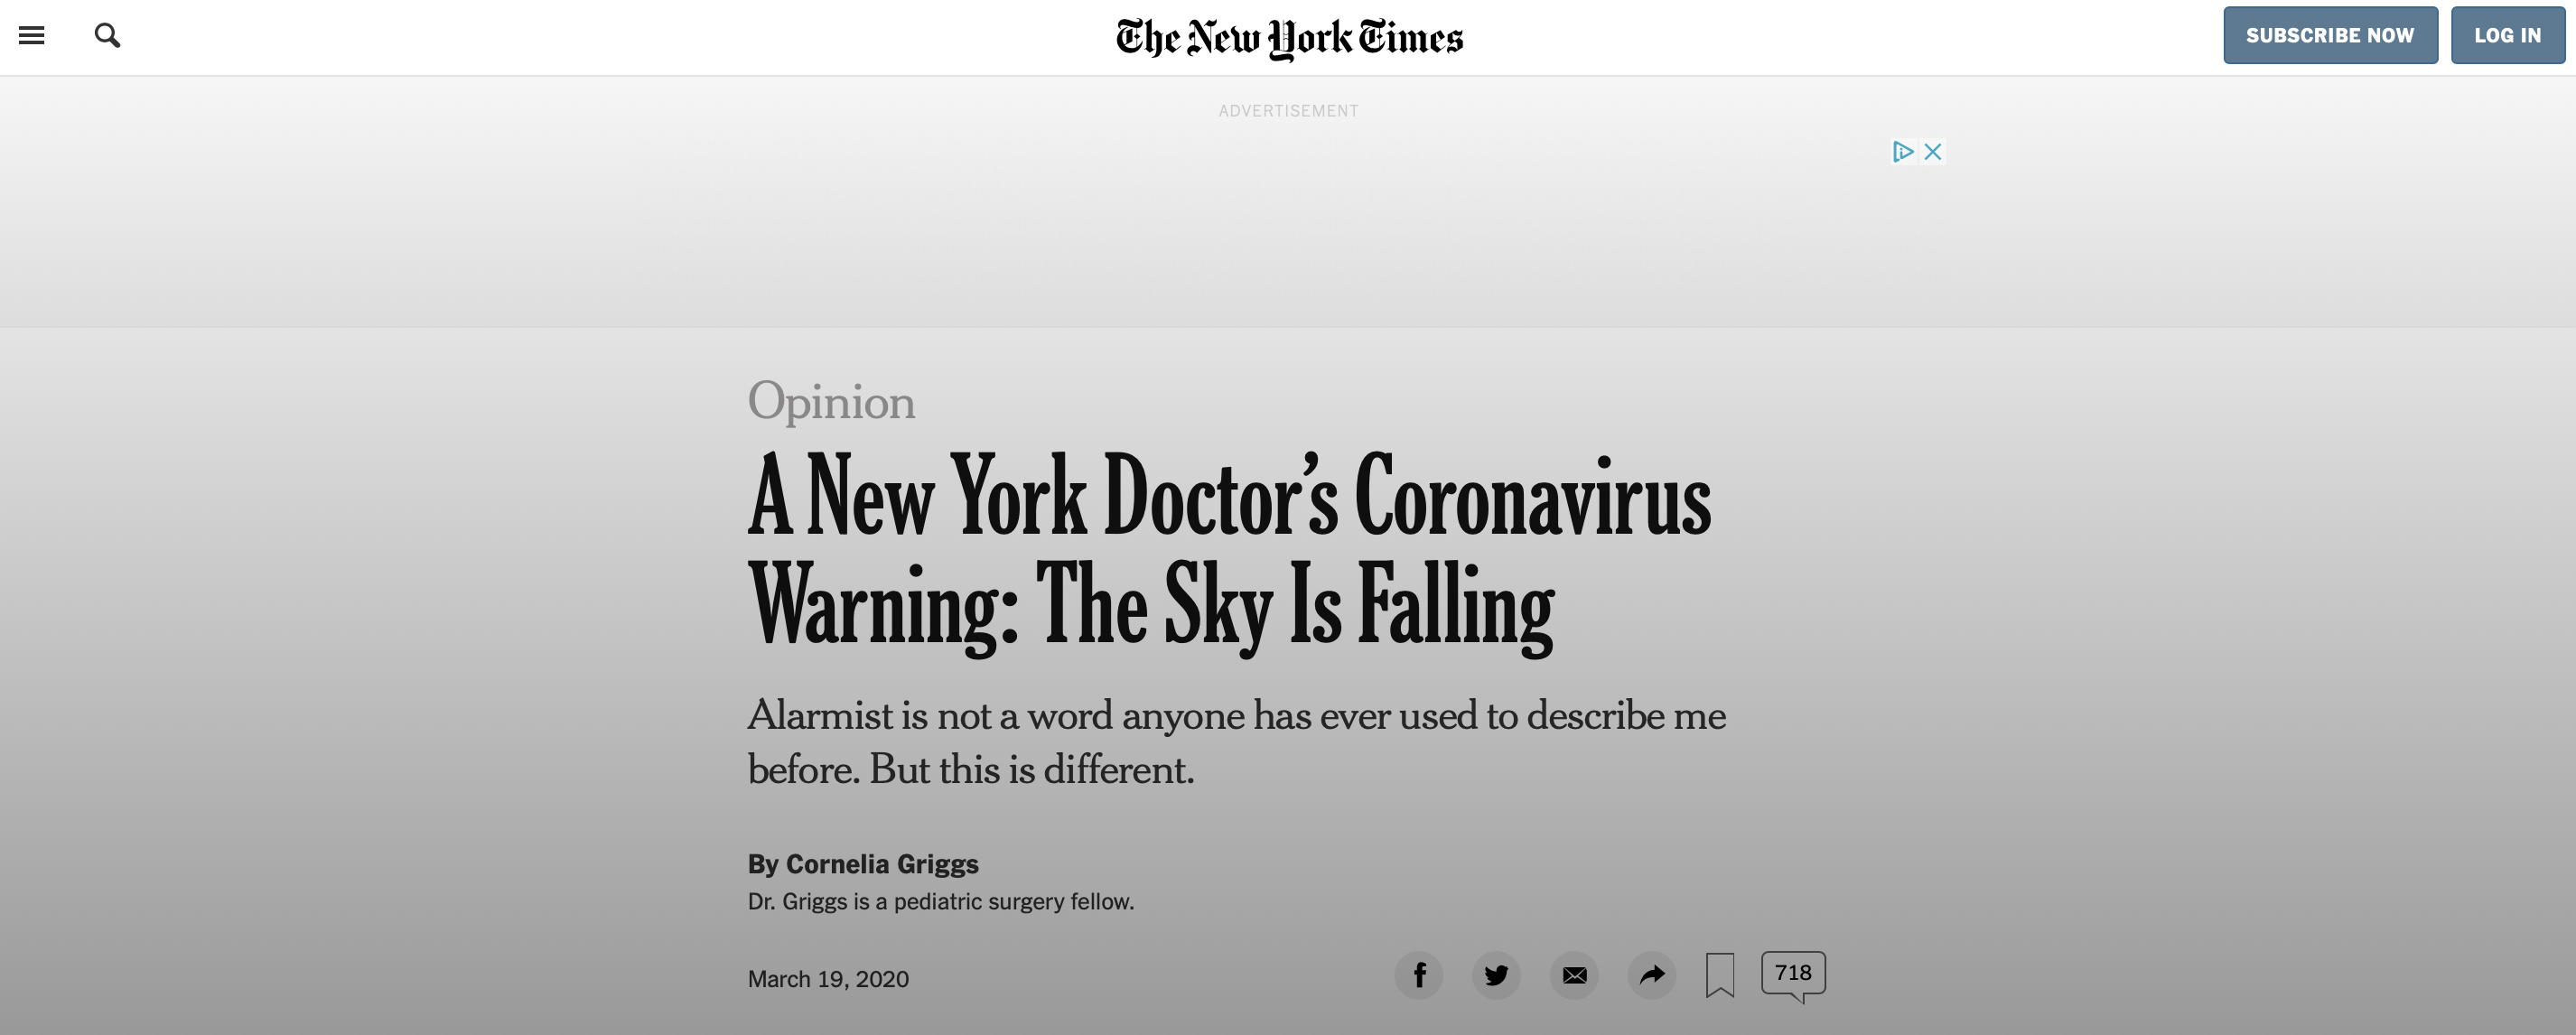 New York Times: The Sky is Falling